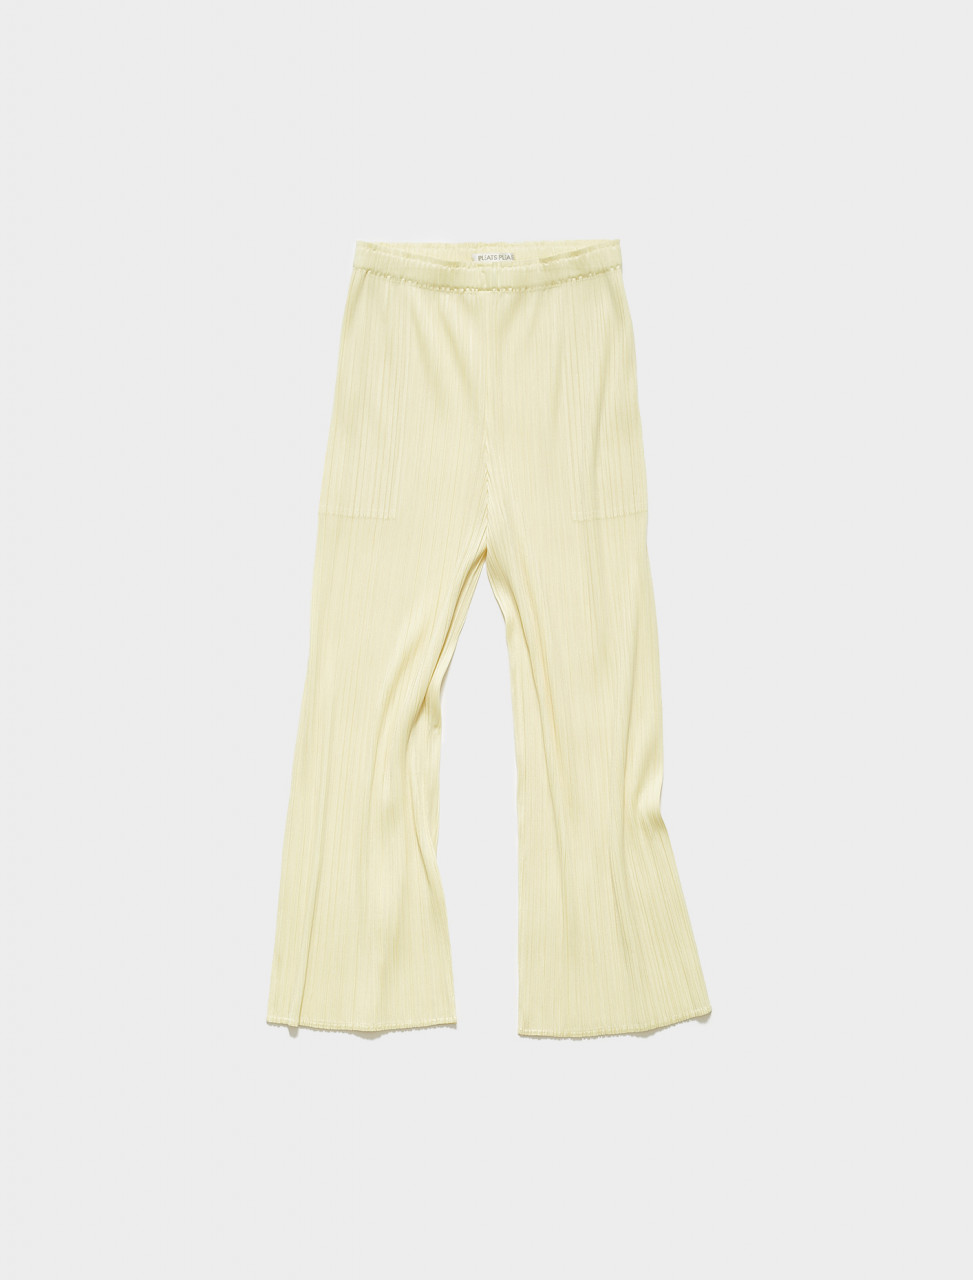 PP16JF205-50 PLEATS PLEASE ISSEY MIYAKE PLEATED TROUSERS IN BABY YELLOW